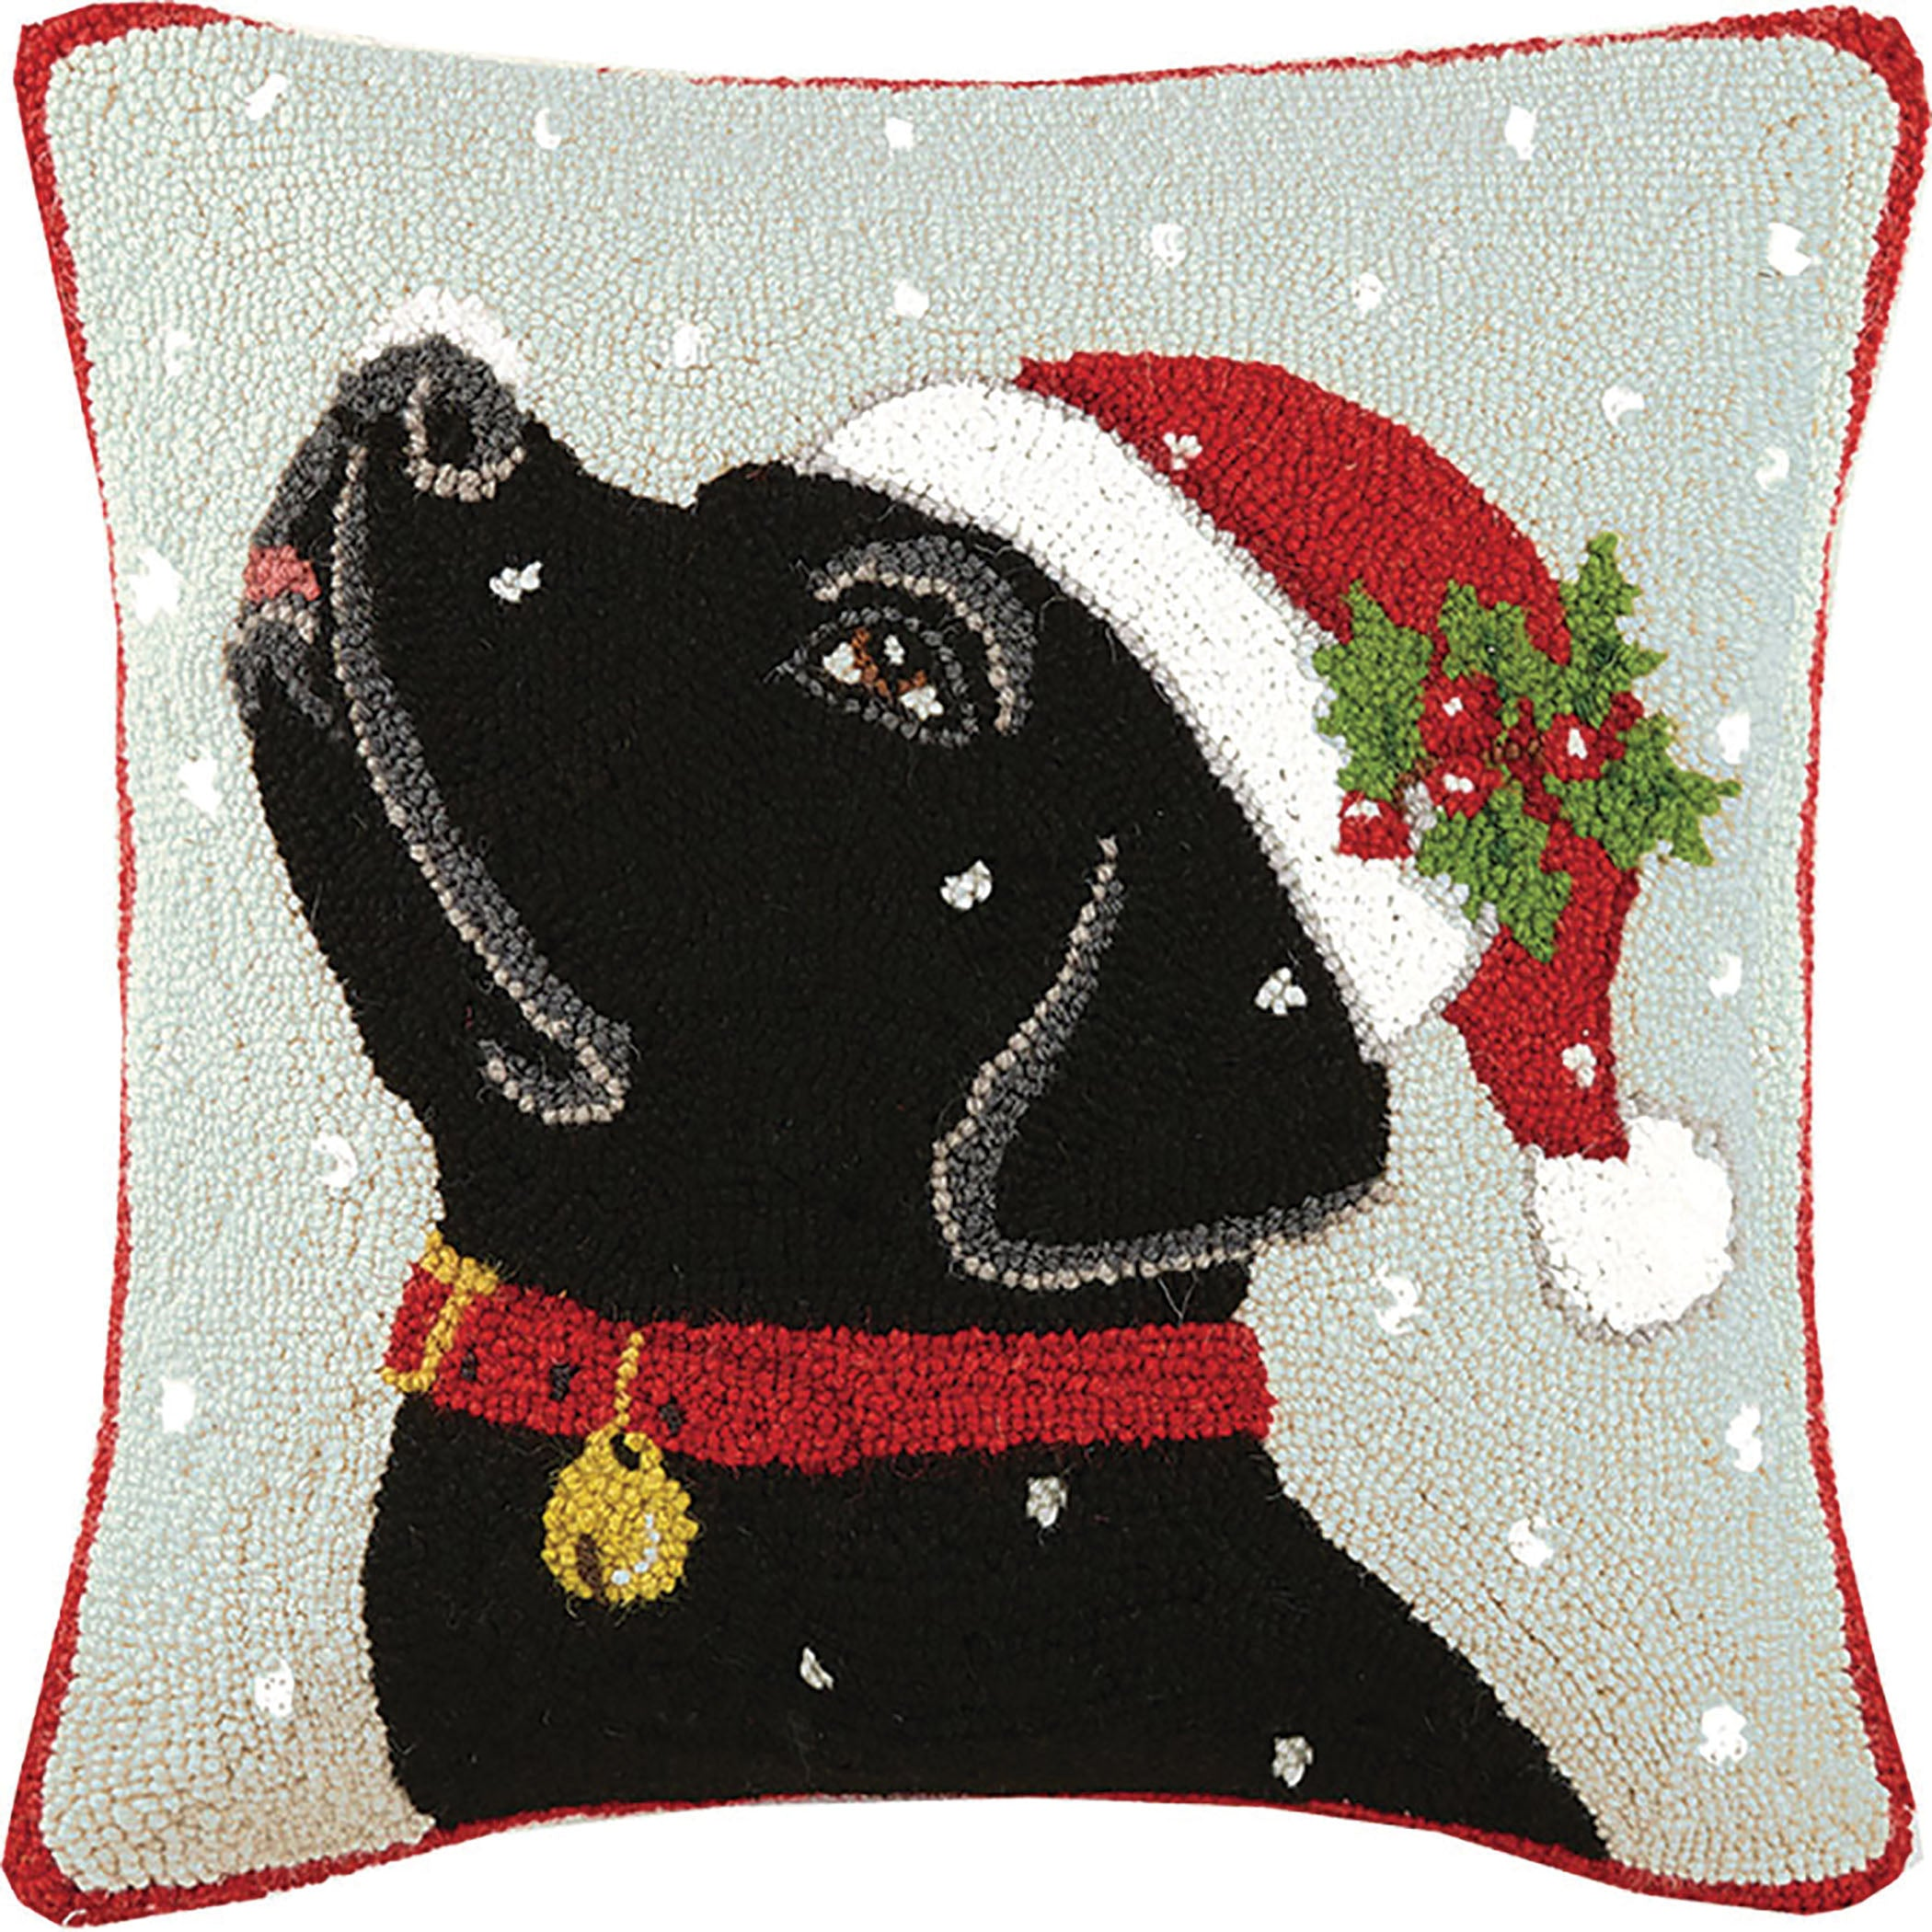 Black Lab Snow Day Hooked Pillow